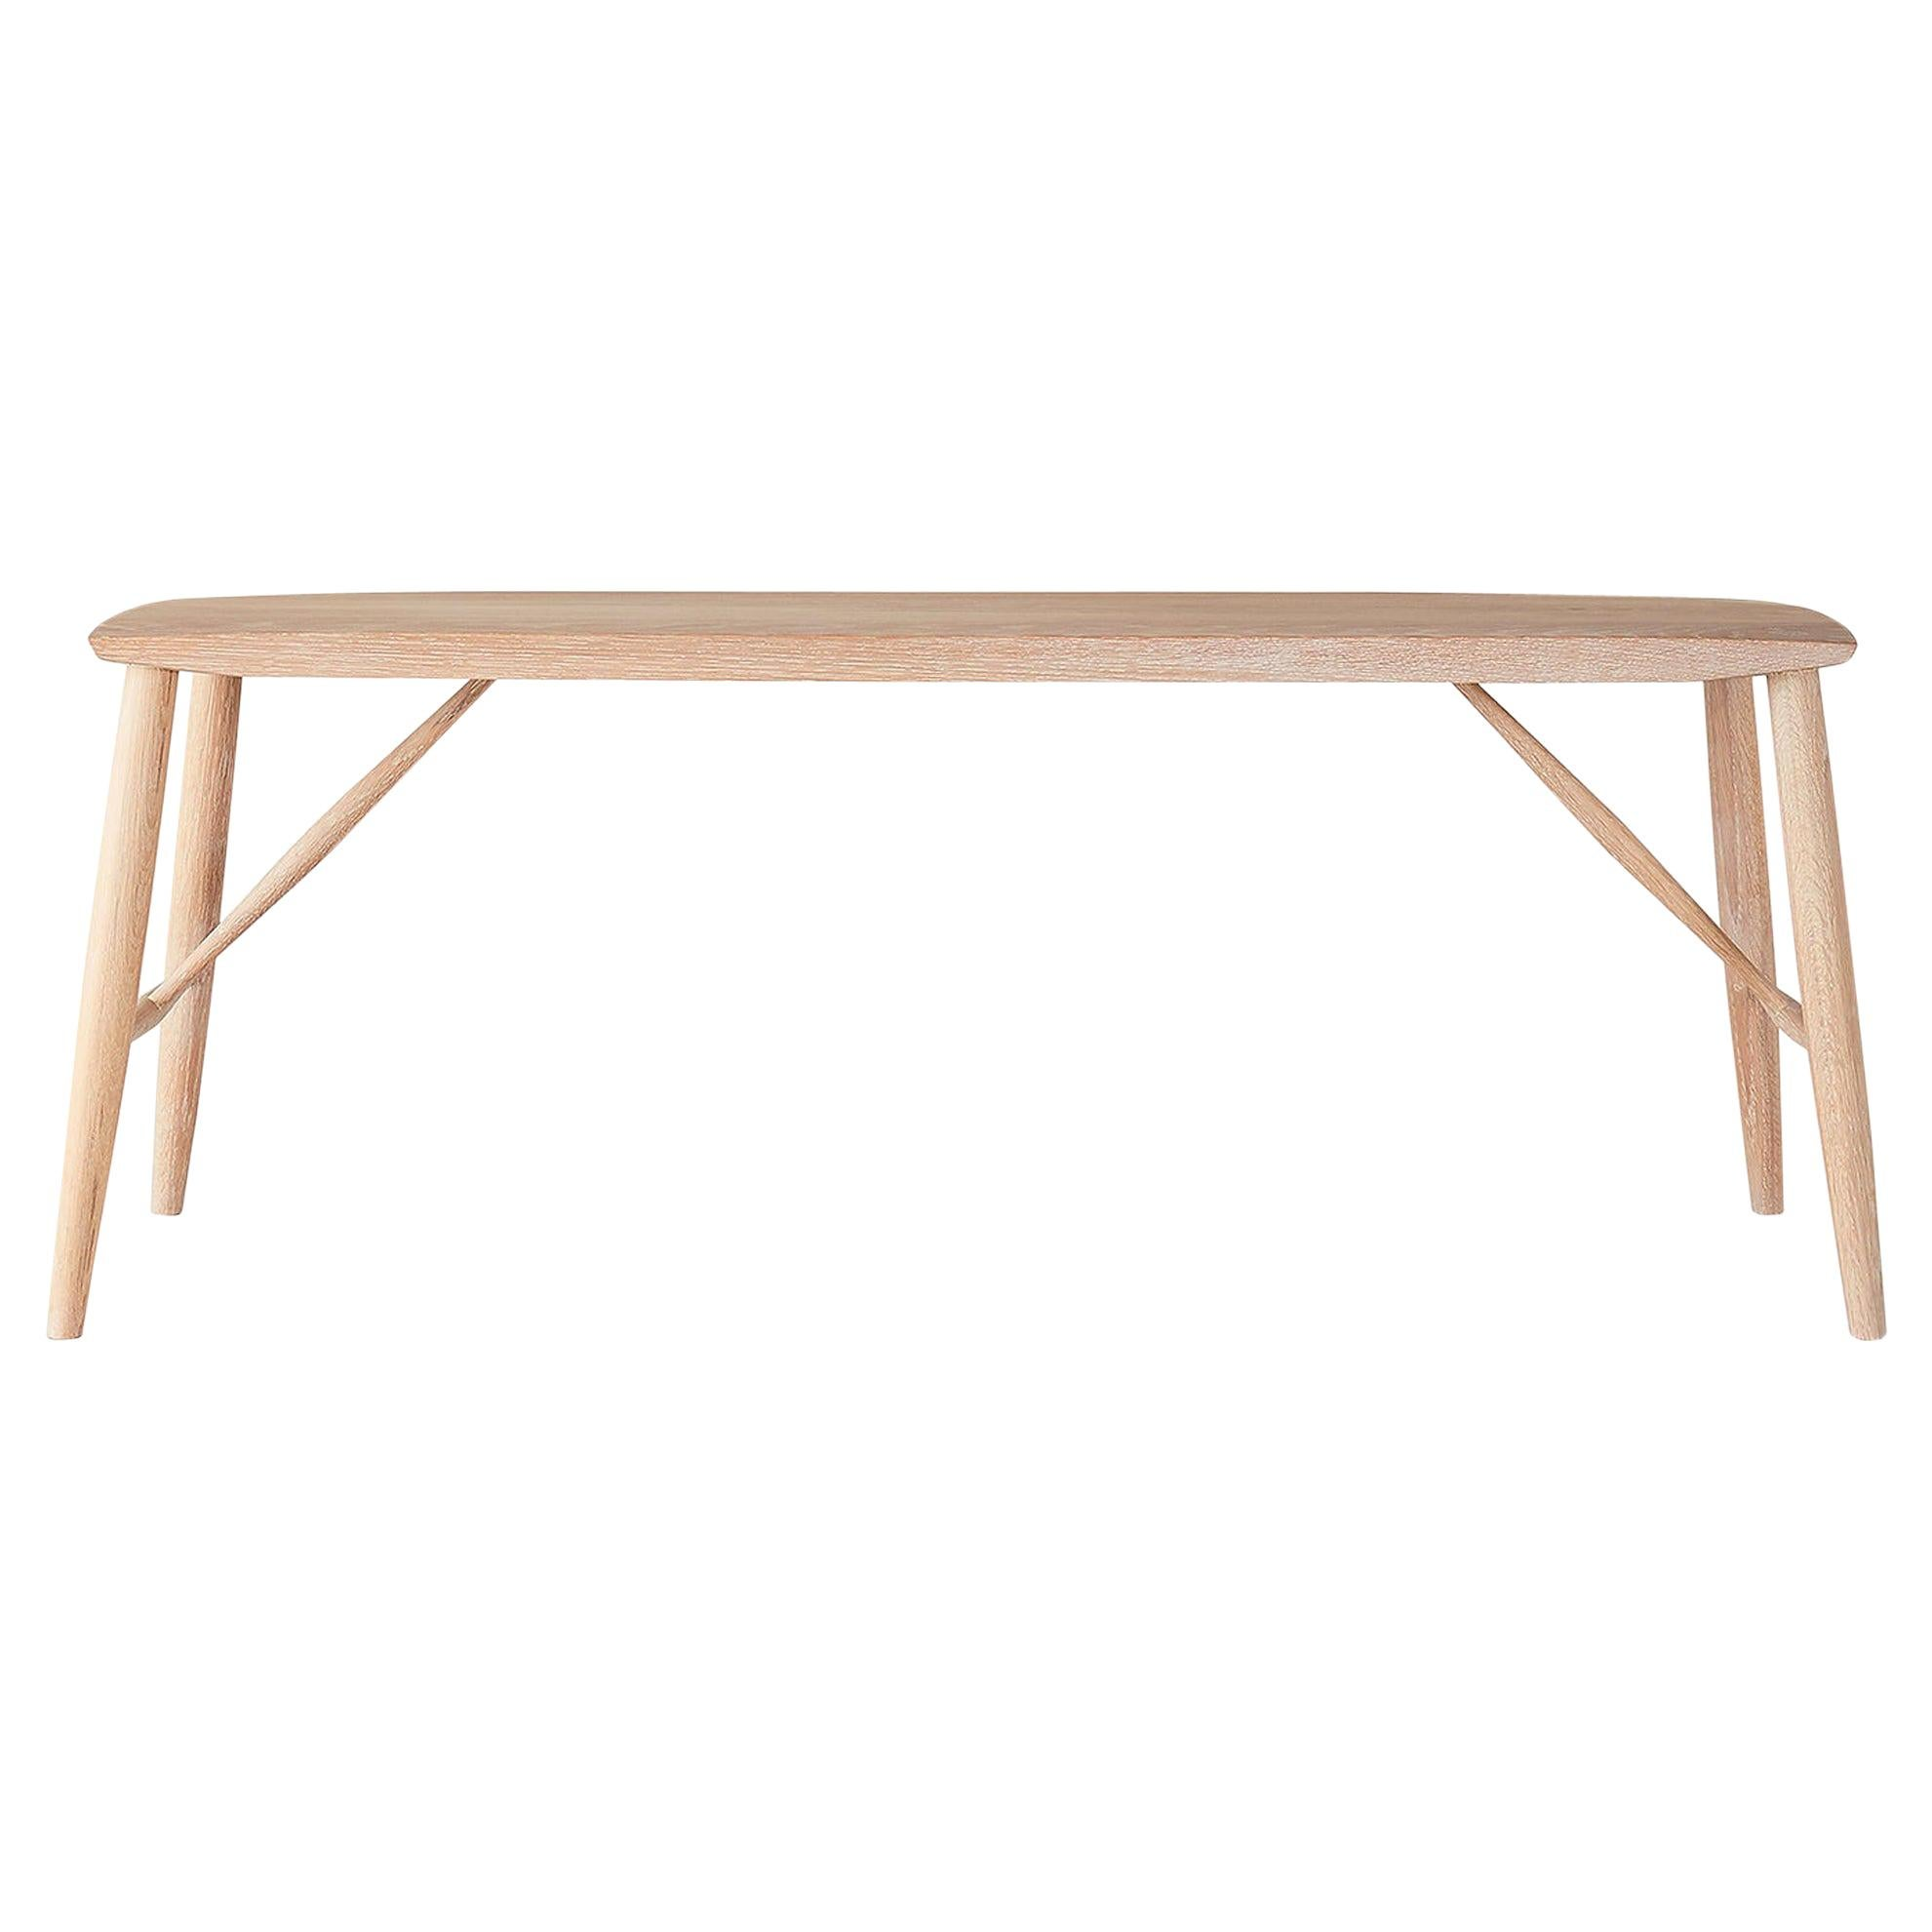 """42"""" Minimal White Oak Bench by Coolican & Company"""